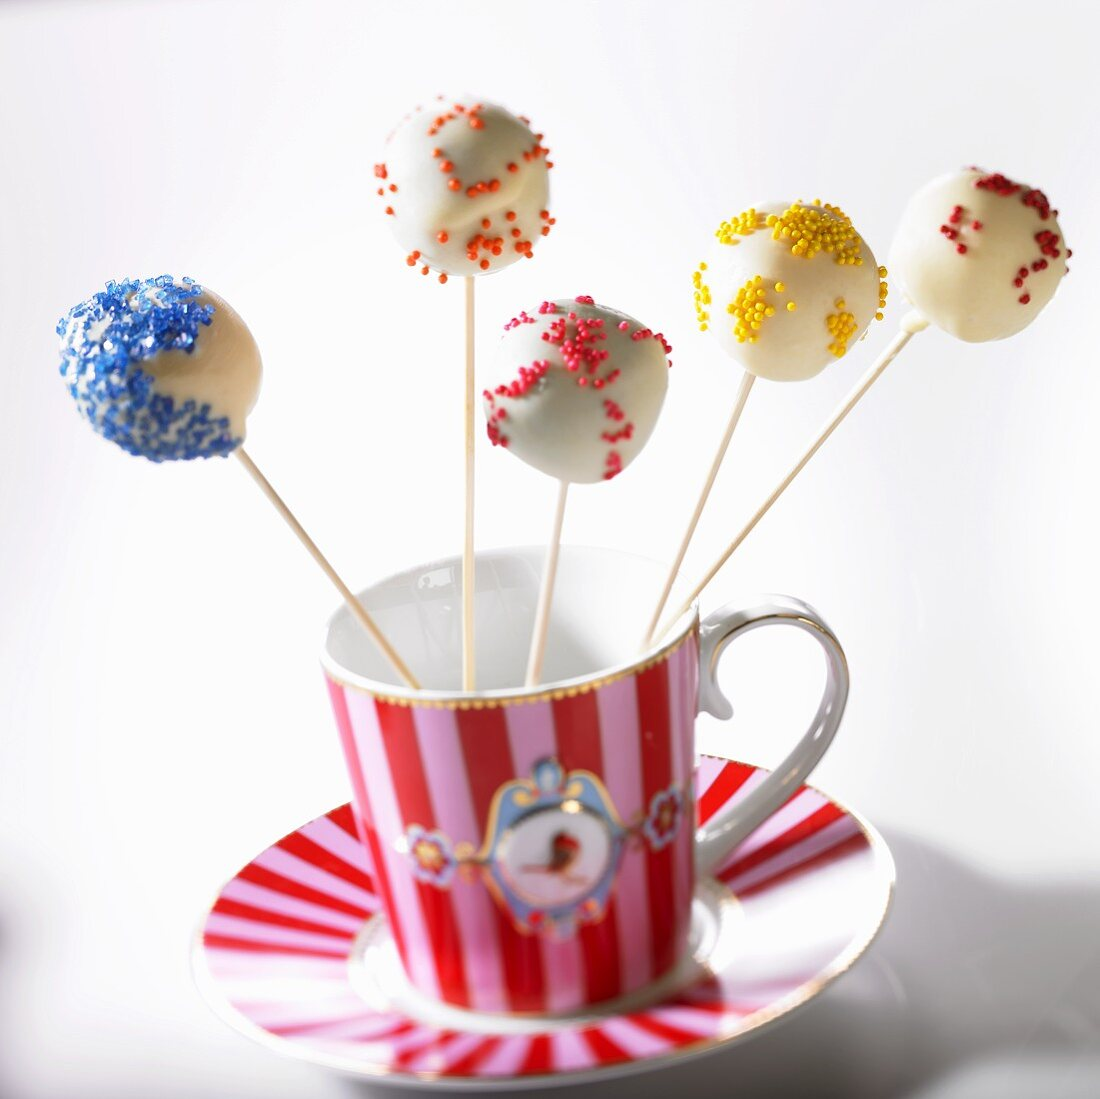 Cake pops with colorful sprinkles in a cup